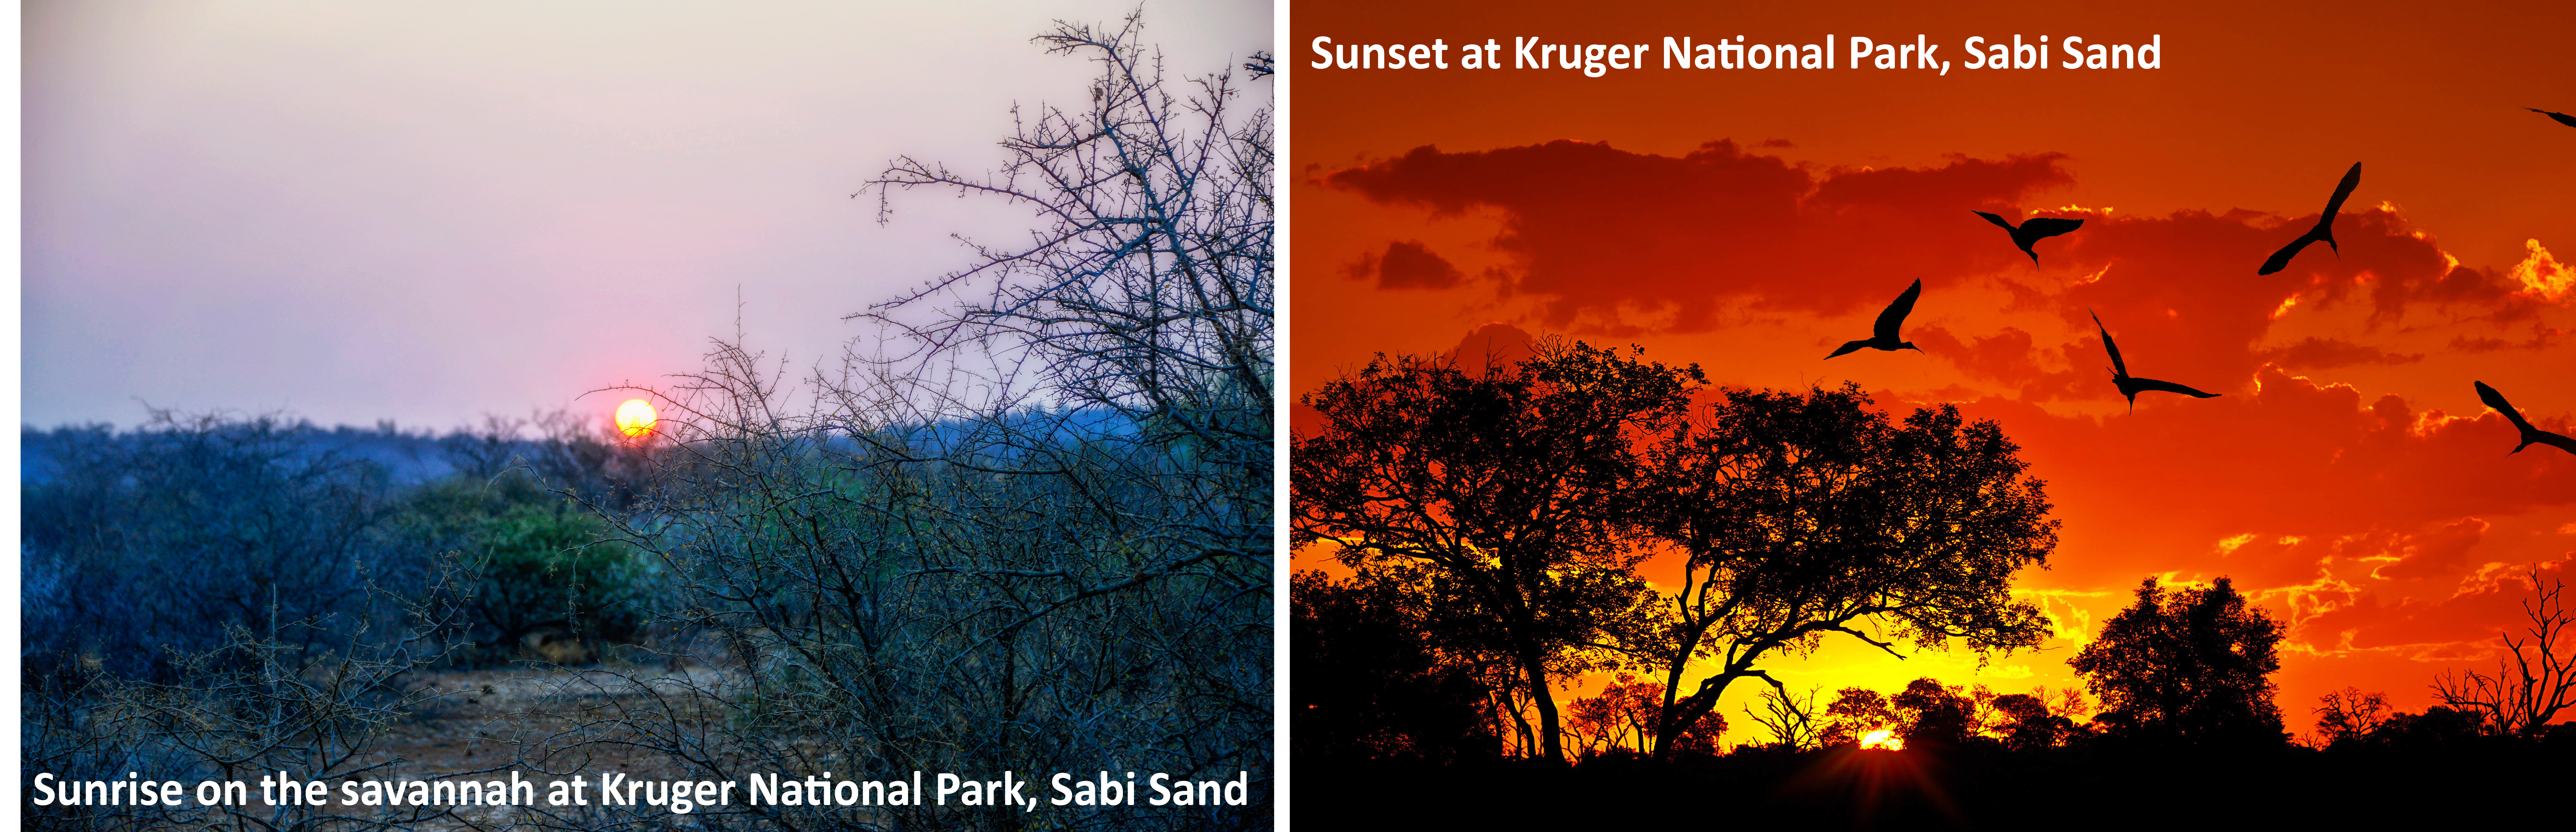 South Africa, Sunrise and sunset